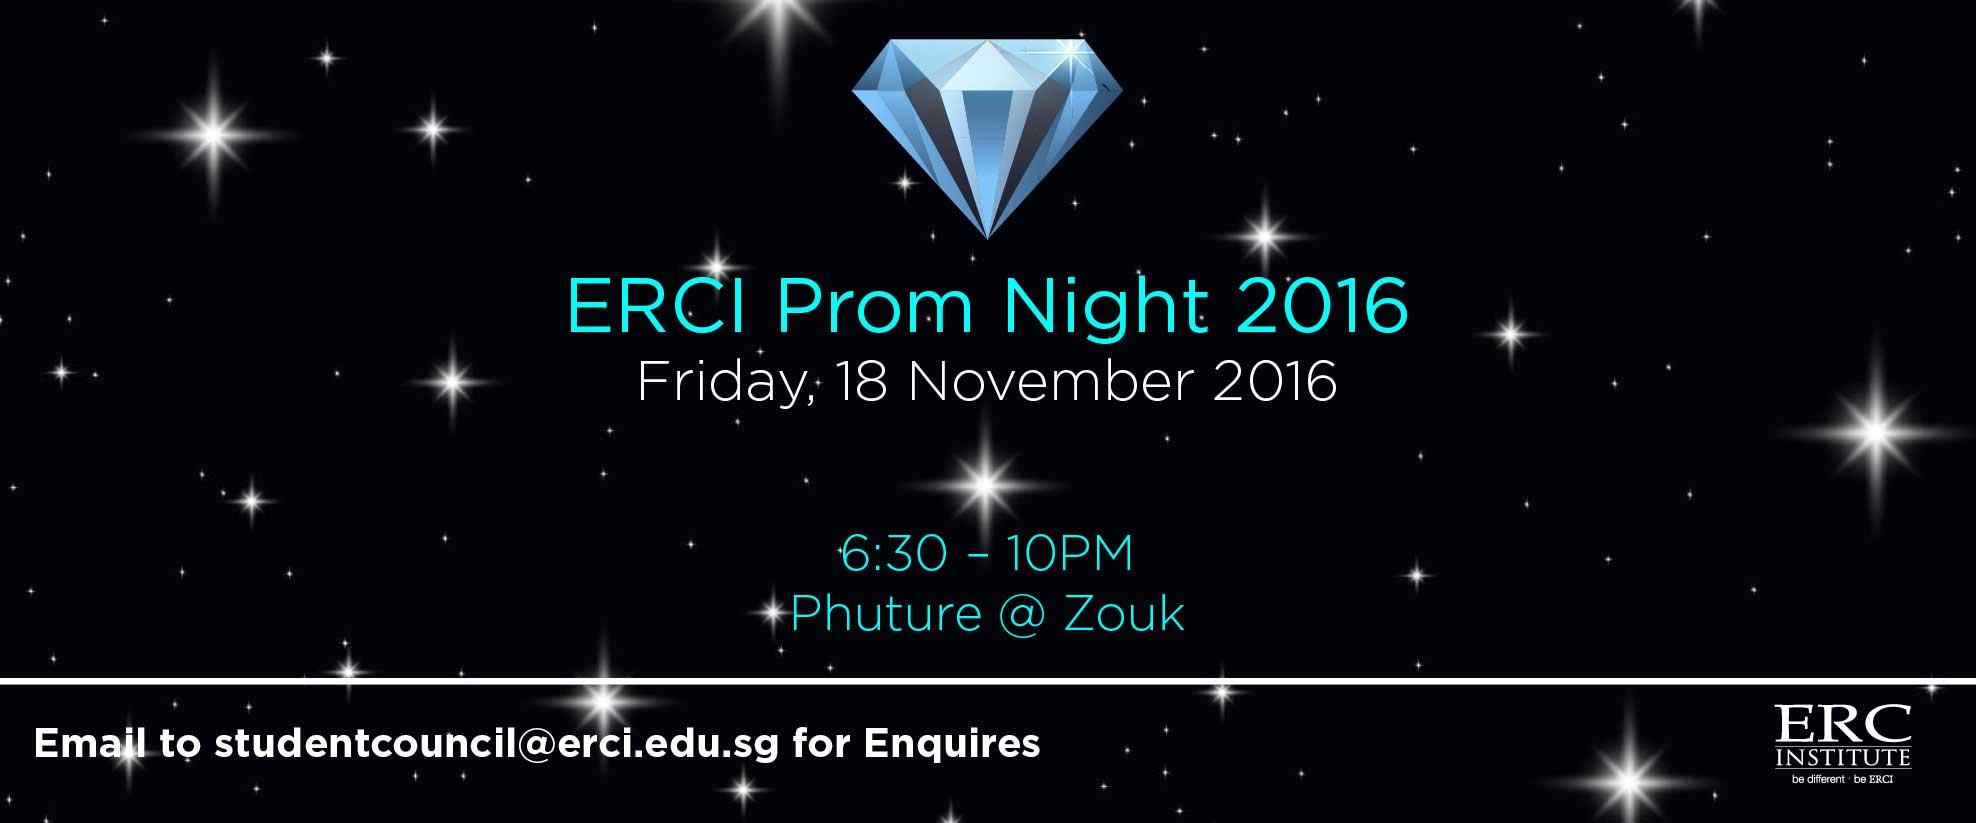 prom-night-marcom